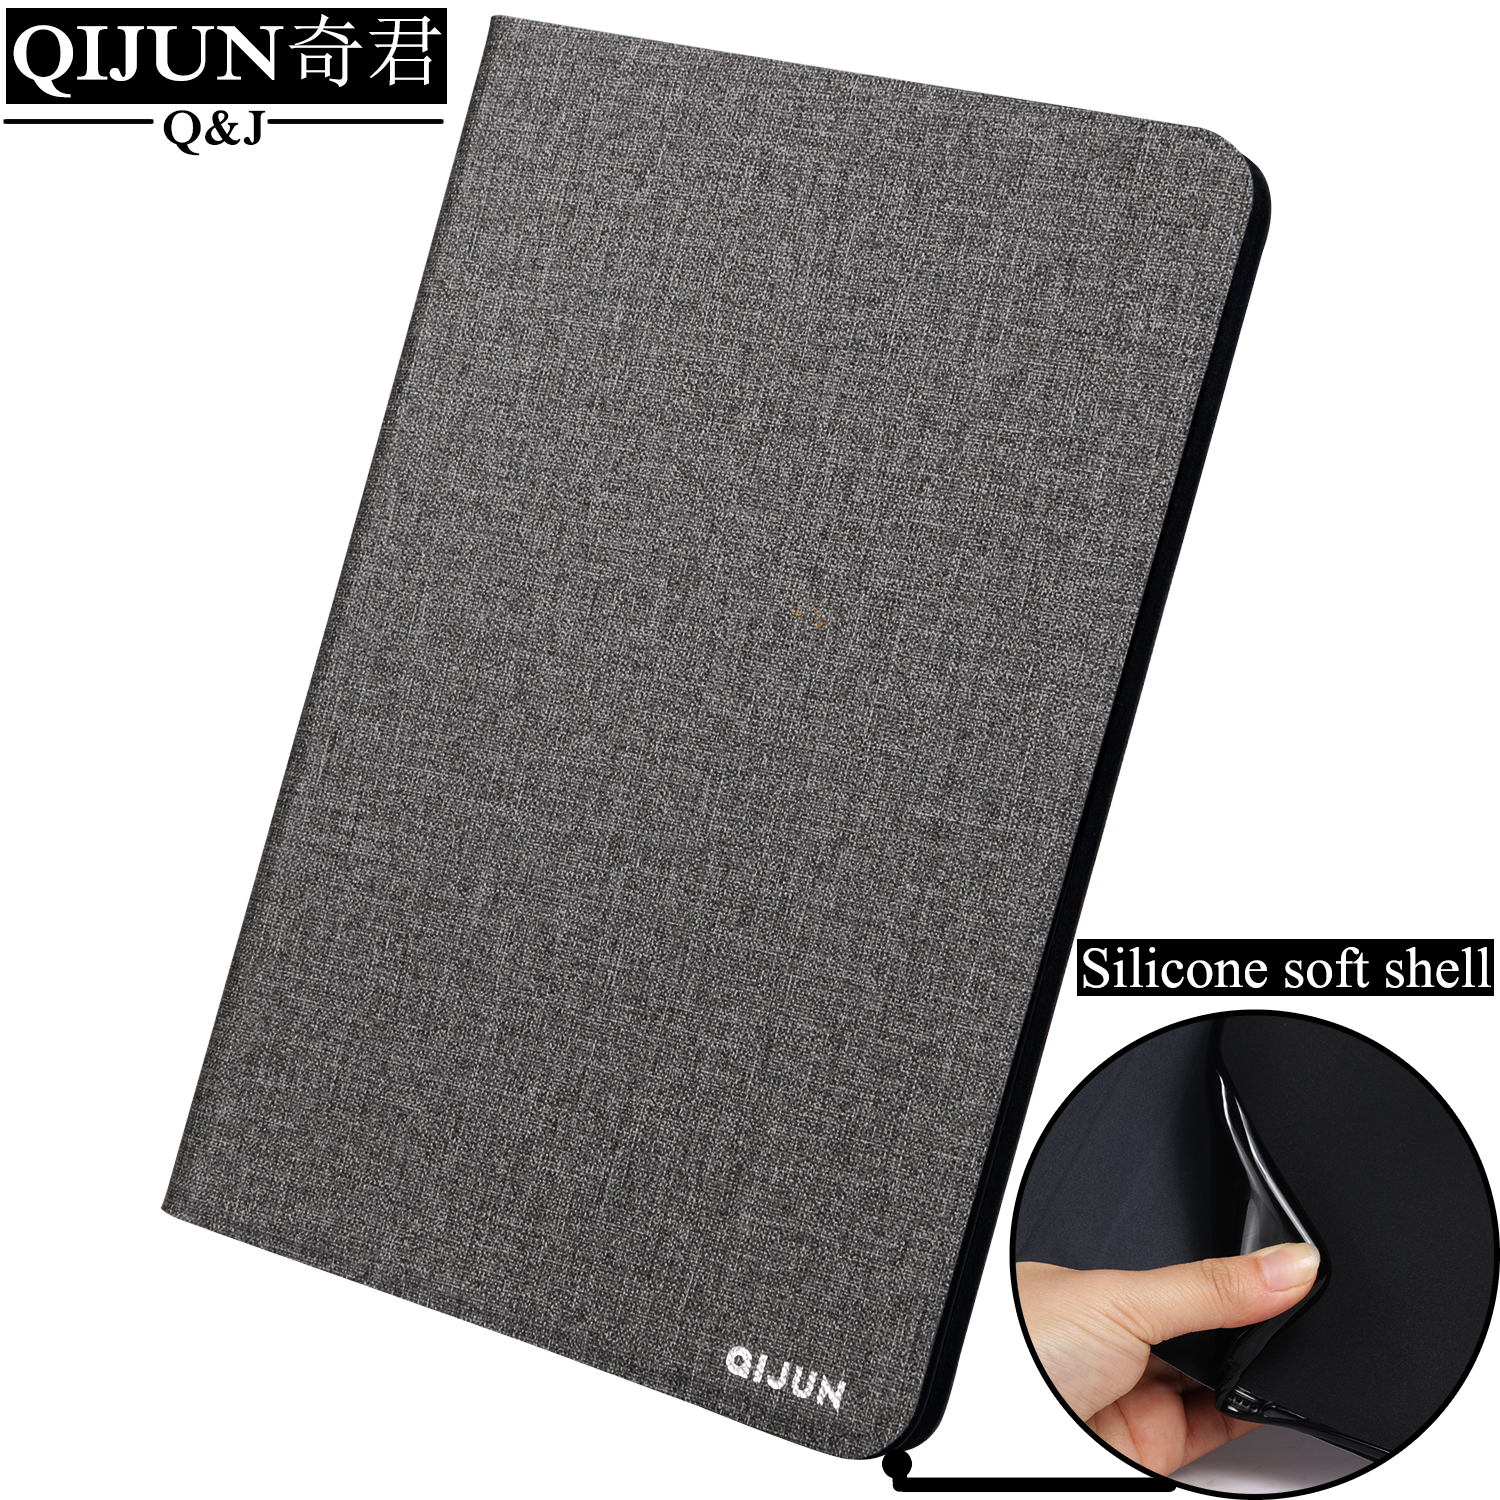 Flip Leather Tablet case For Samsung Galaxy Tab E 9.6-inch fundas Protective Stand Cover Soft Shell capa card for TabE T560 T561Flip Leather Tablet case For Samsung Galaxy Tab E 9.6-inch fundas Protective Stand Cover Soft Shell capa card for TabE T560 T561